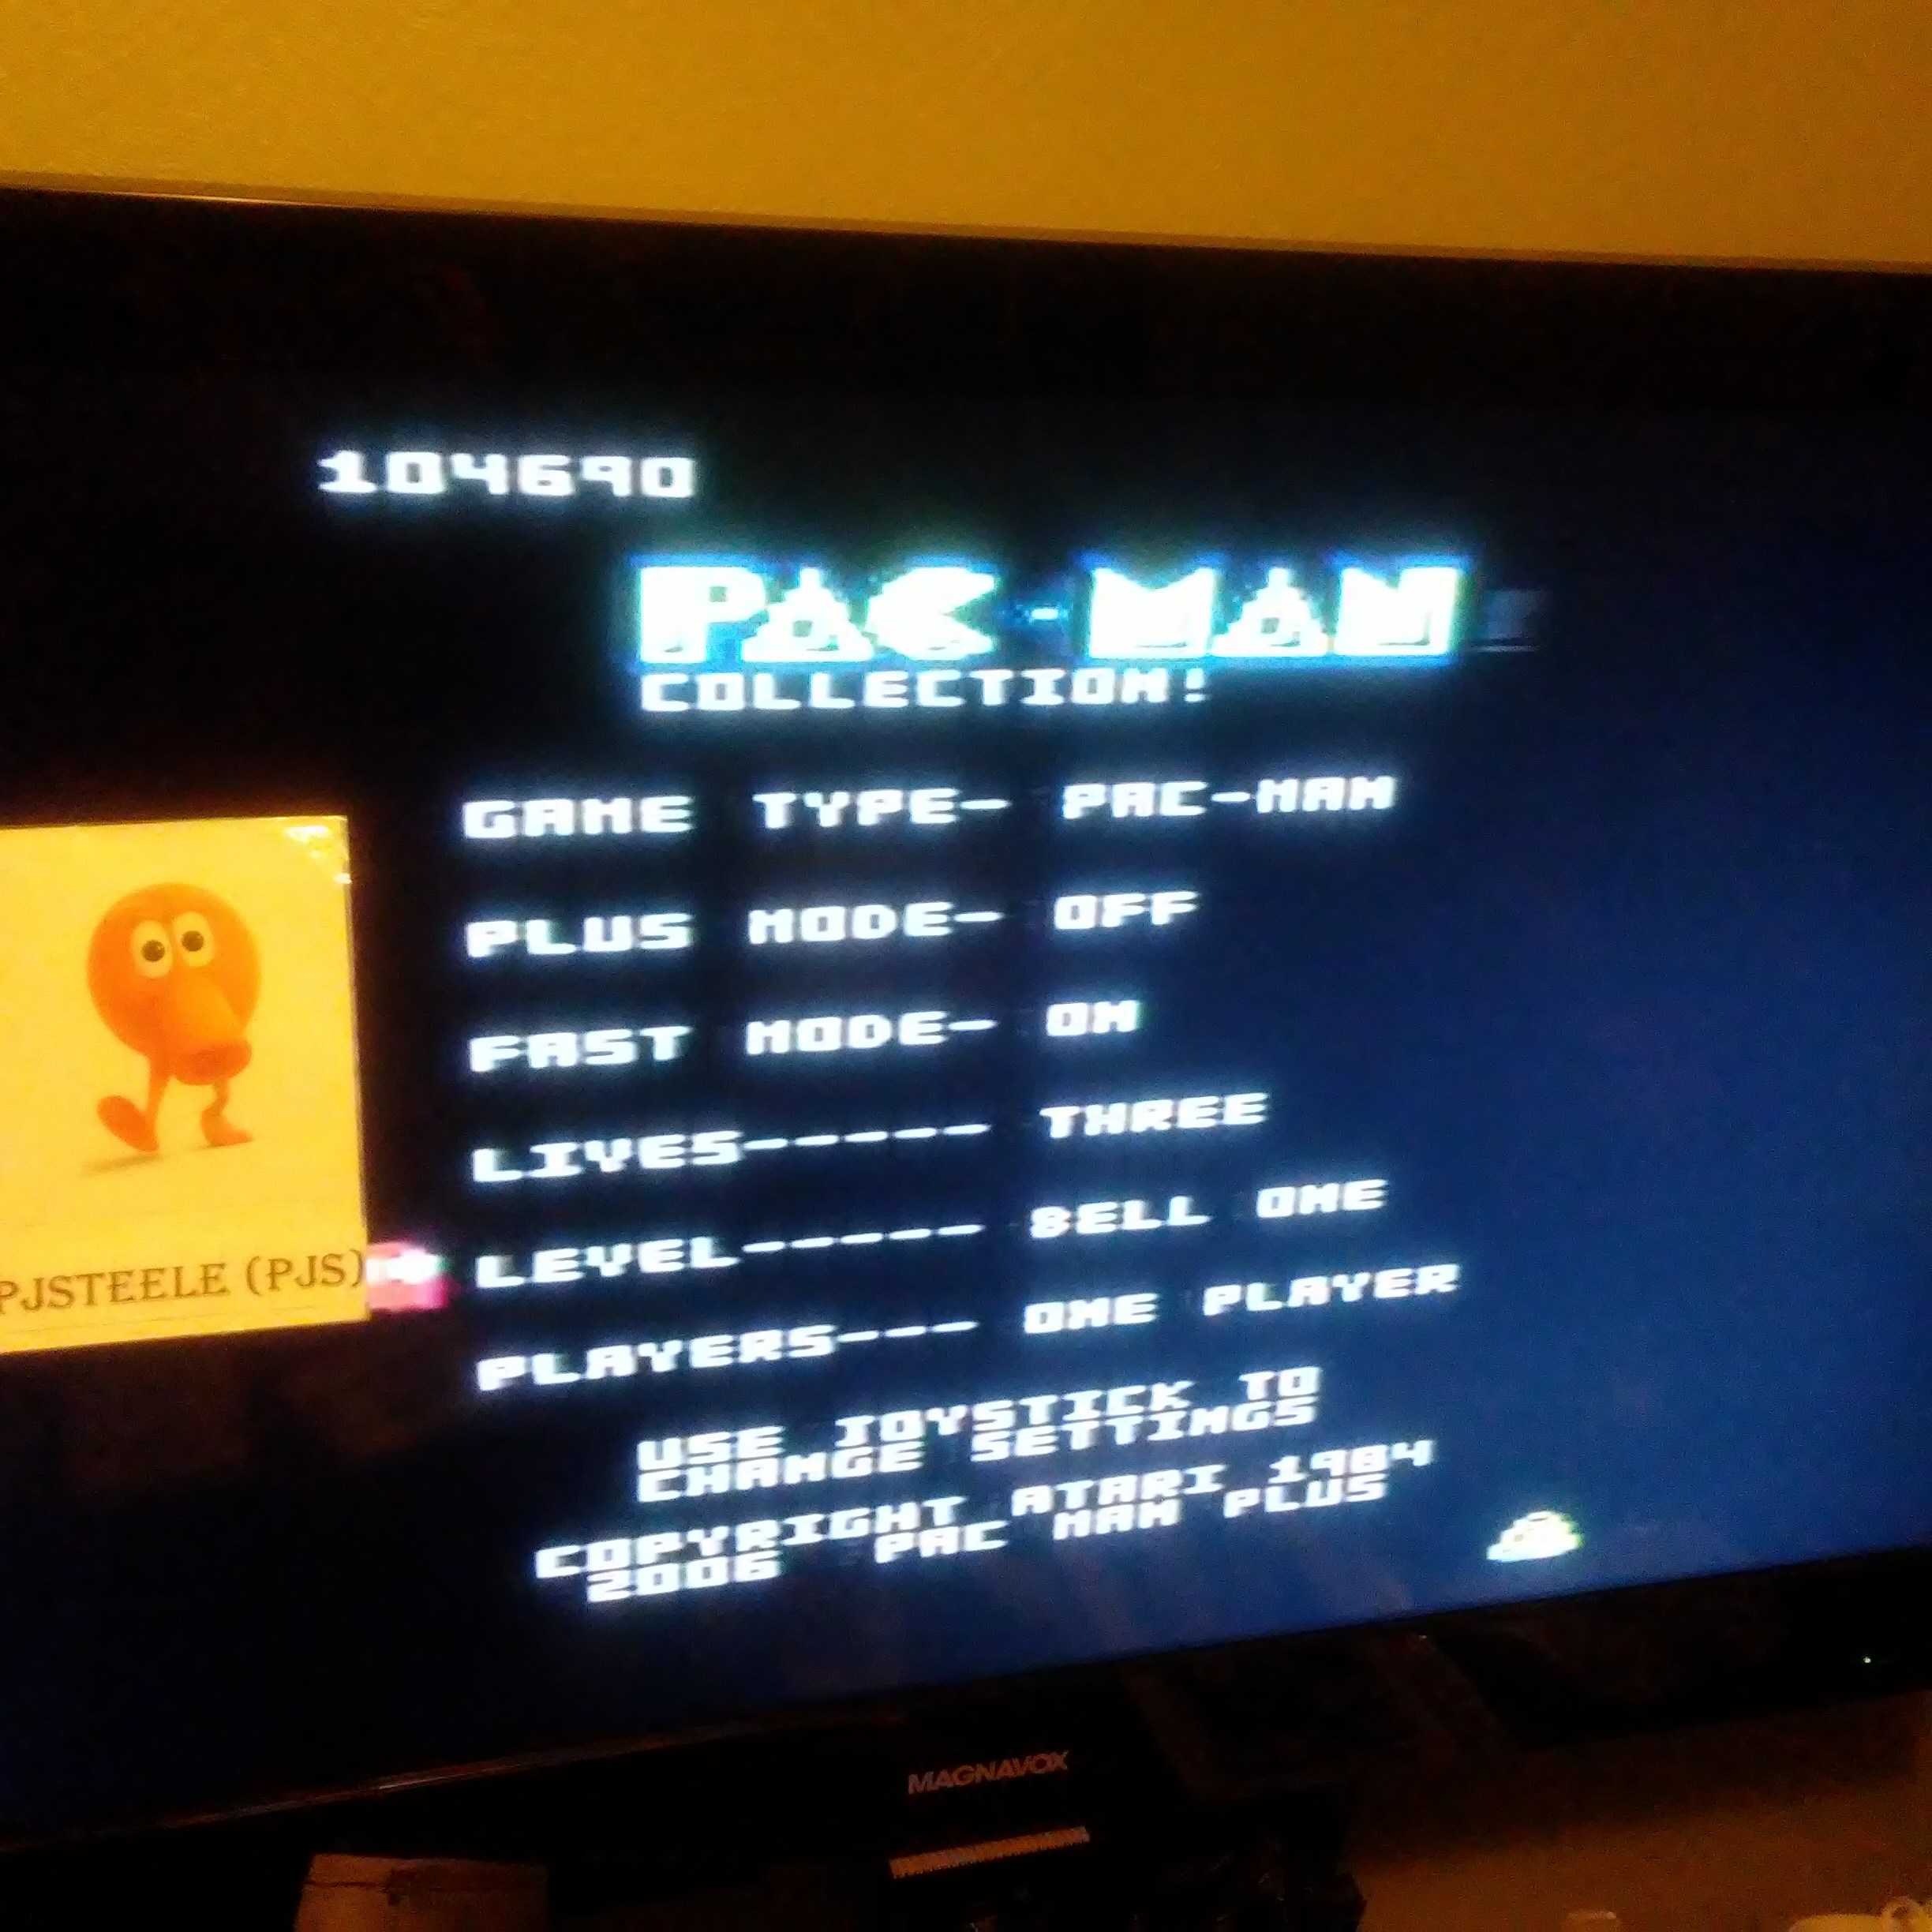 Pac-Man Collection: Pac-Man [Bell One/Plus Off/Fast On] 104,690 points